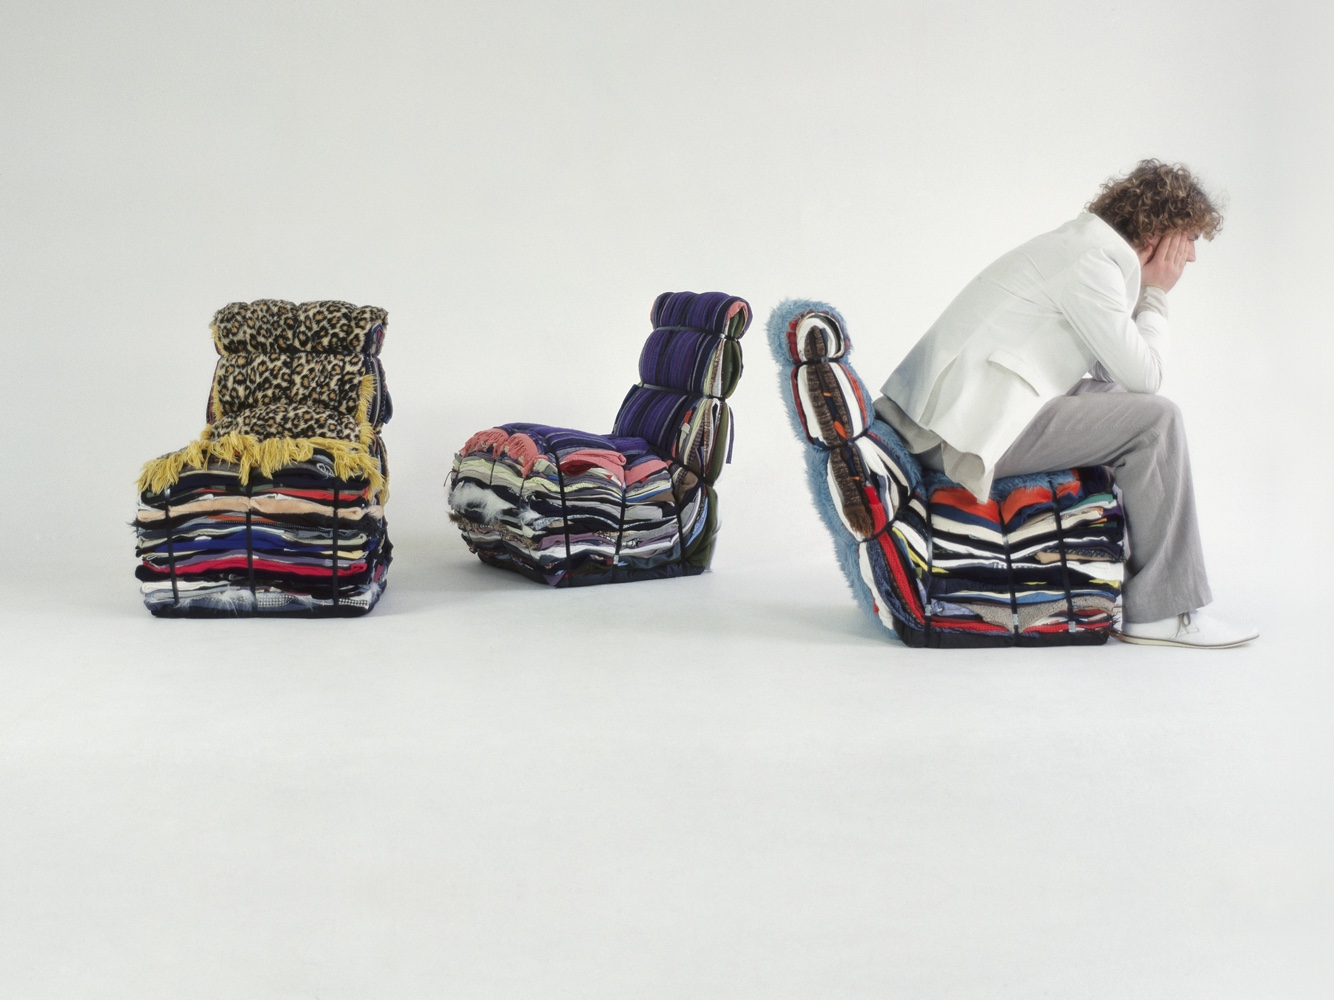 Rag chair by Tejo Remy.